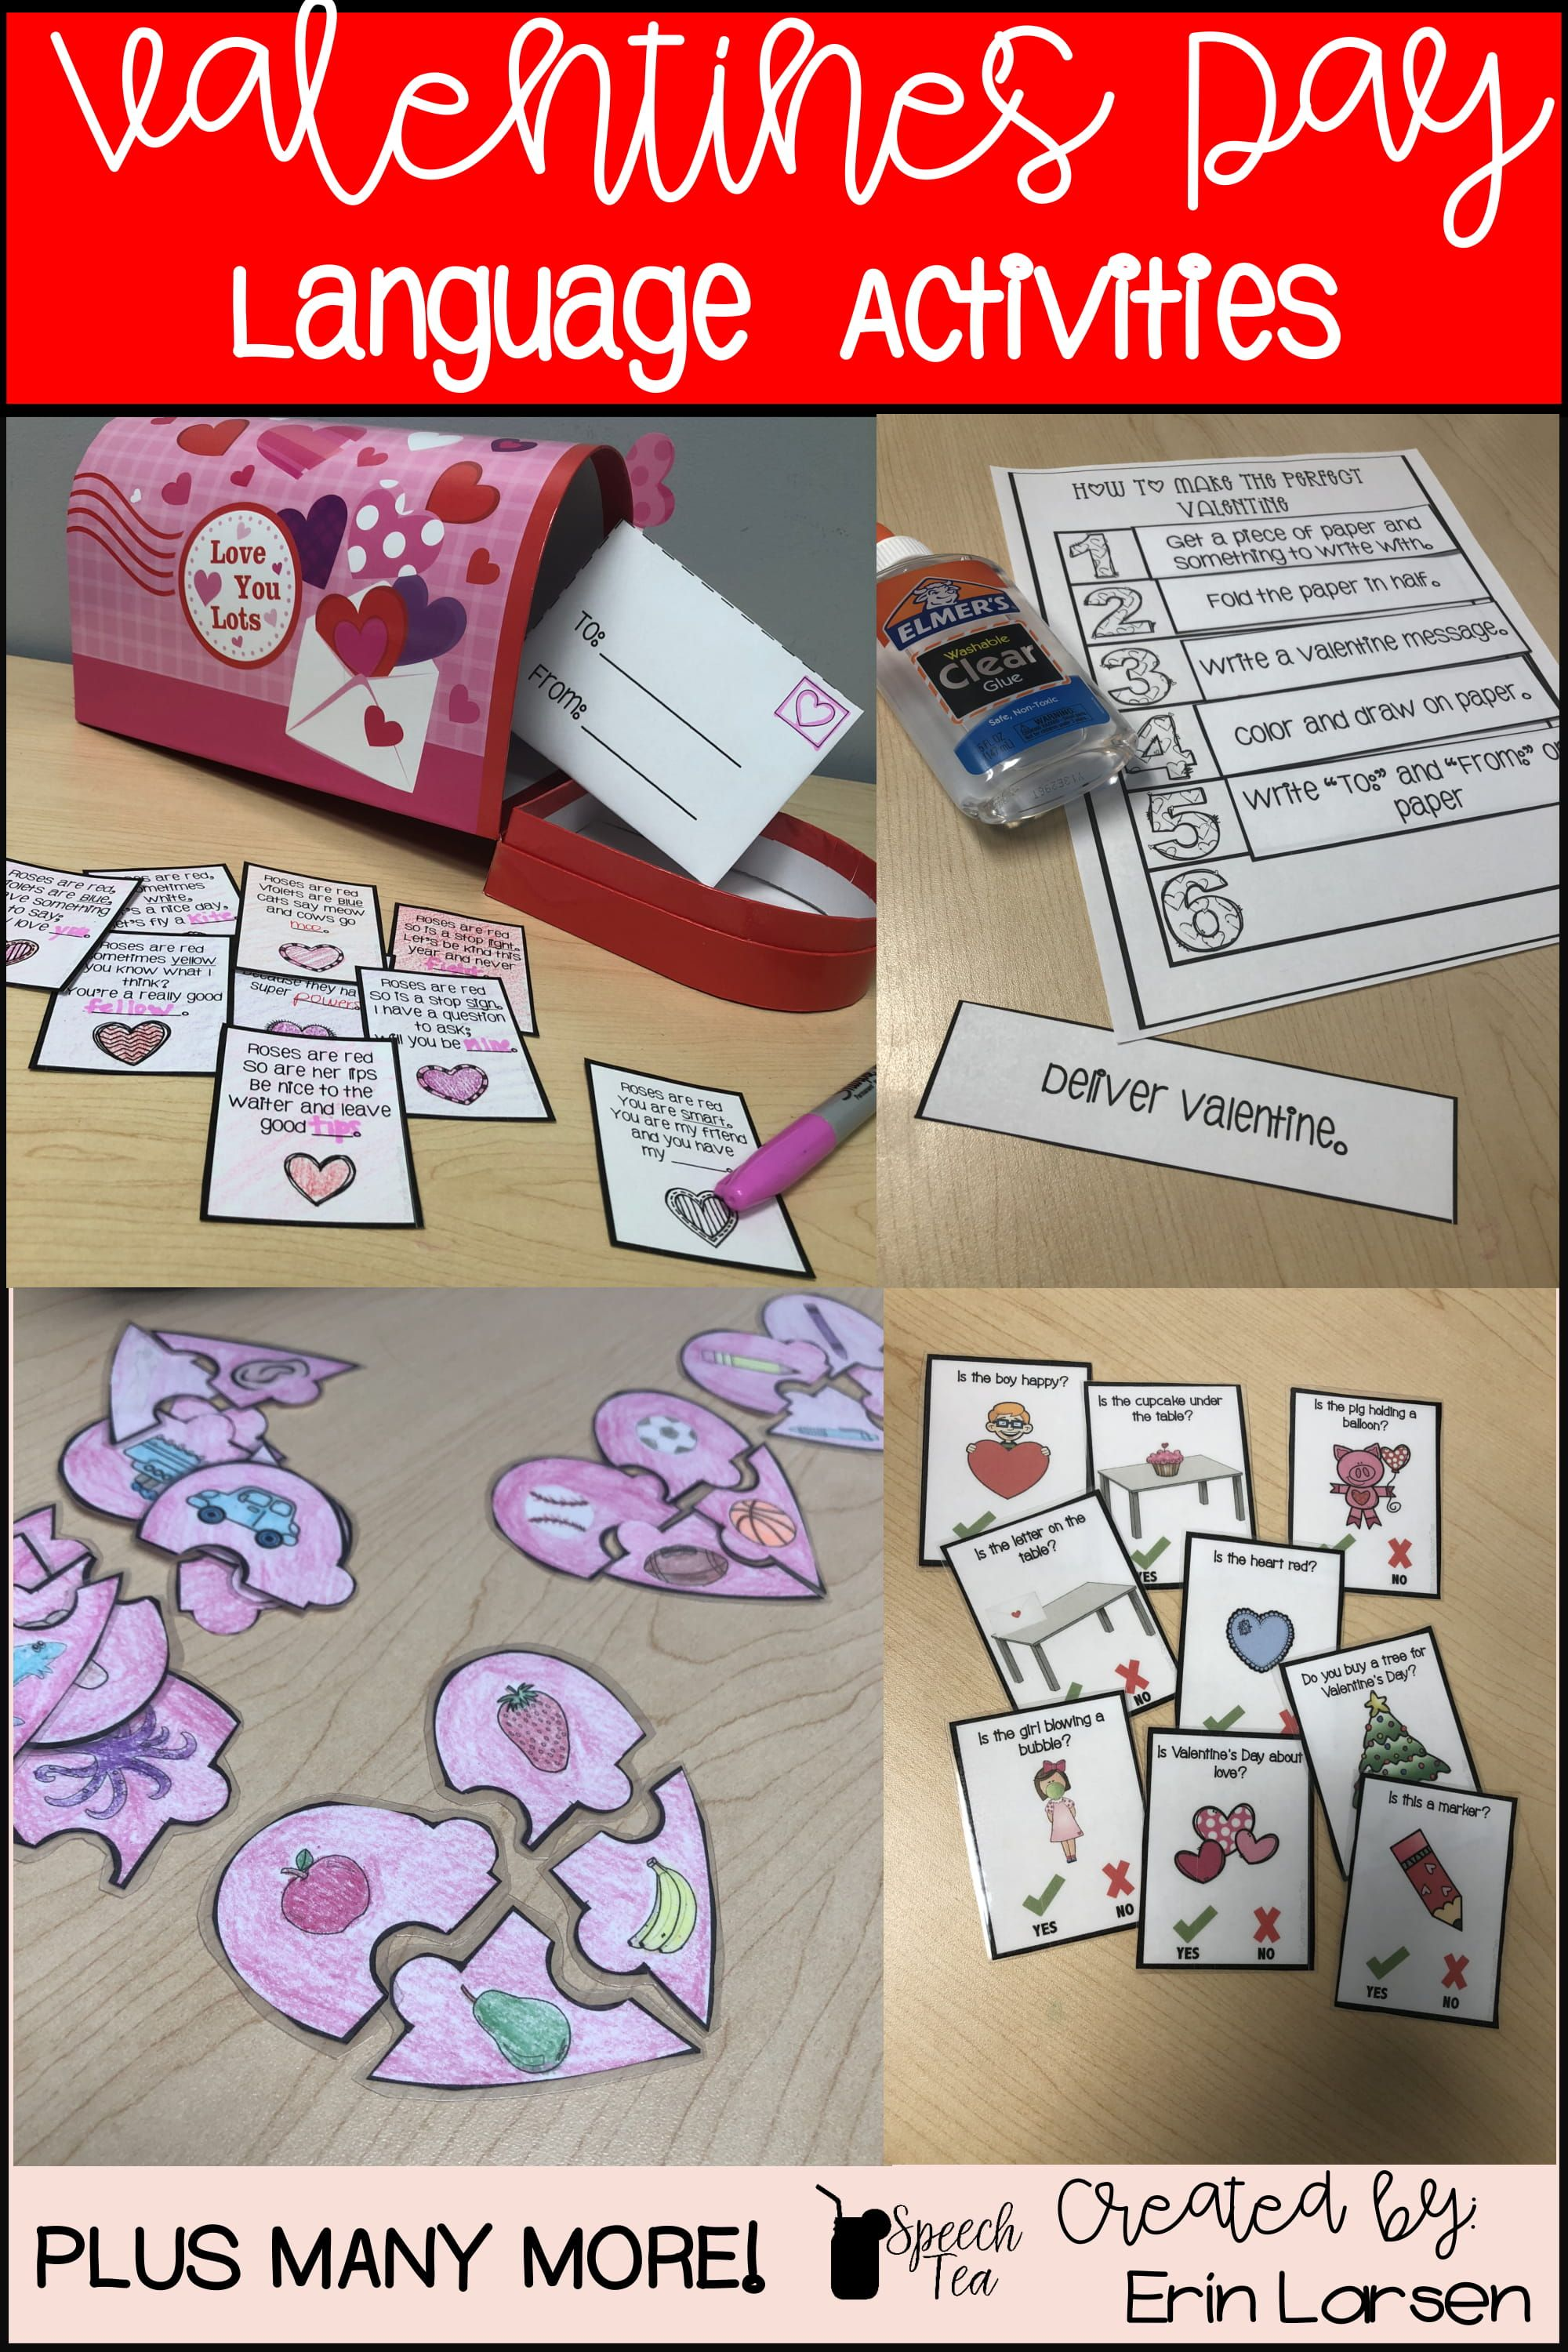 Save time and energy with these fun valentines day themed language activities. Multiple language targets covered. Click for more info.